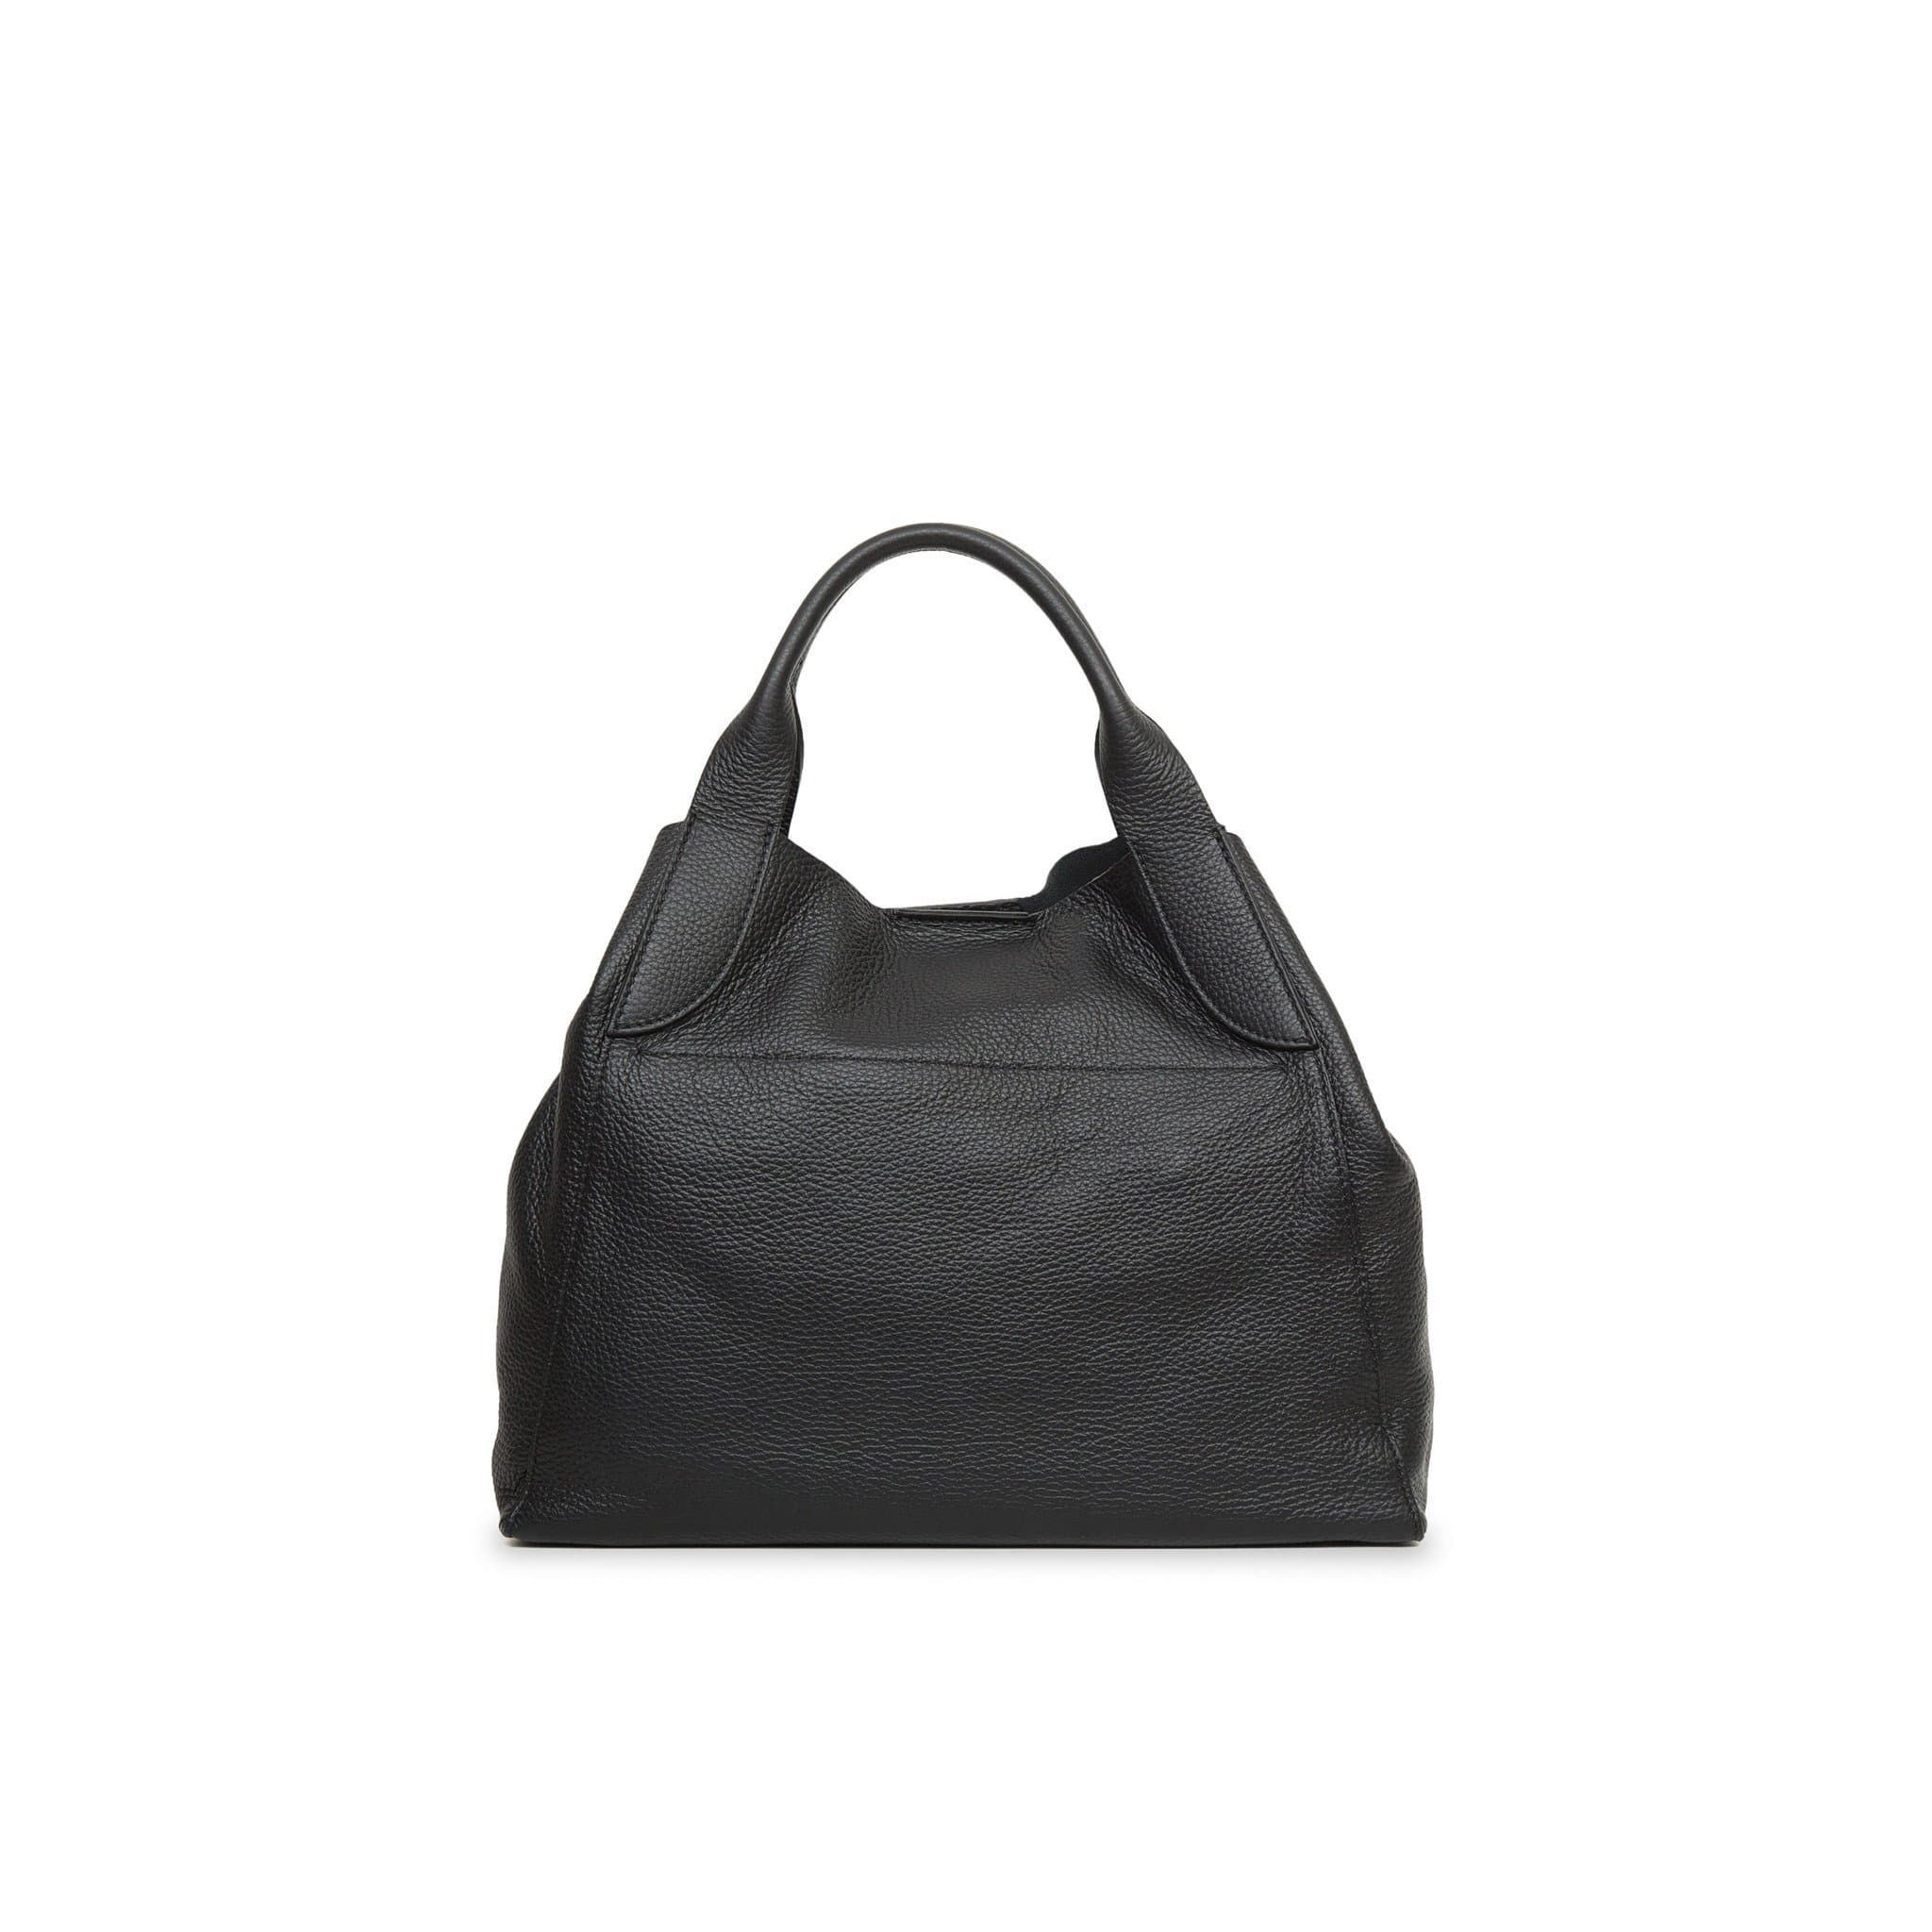 Alice Mini Palermo Leather Handbag - Black